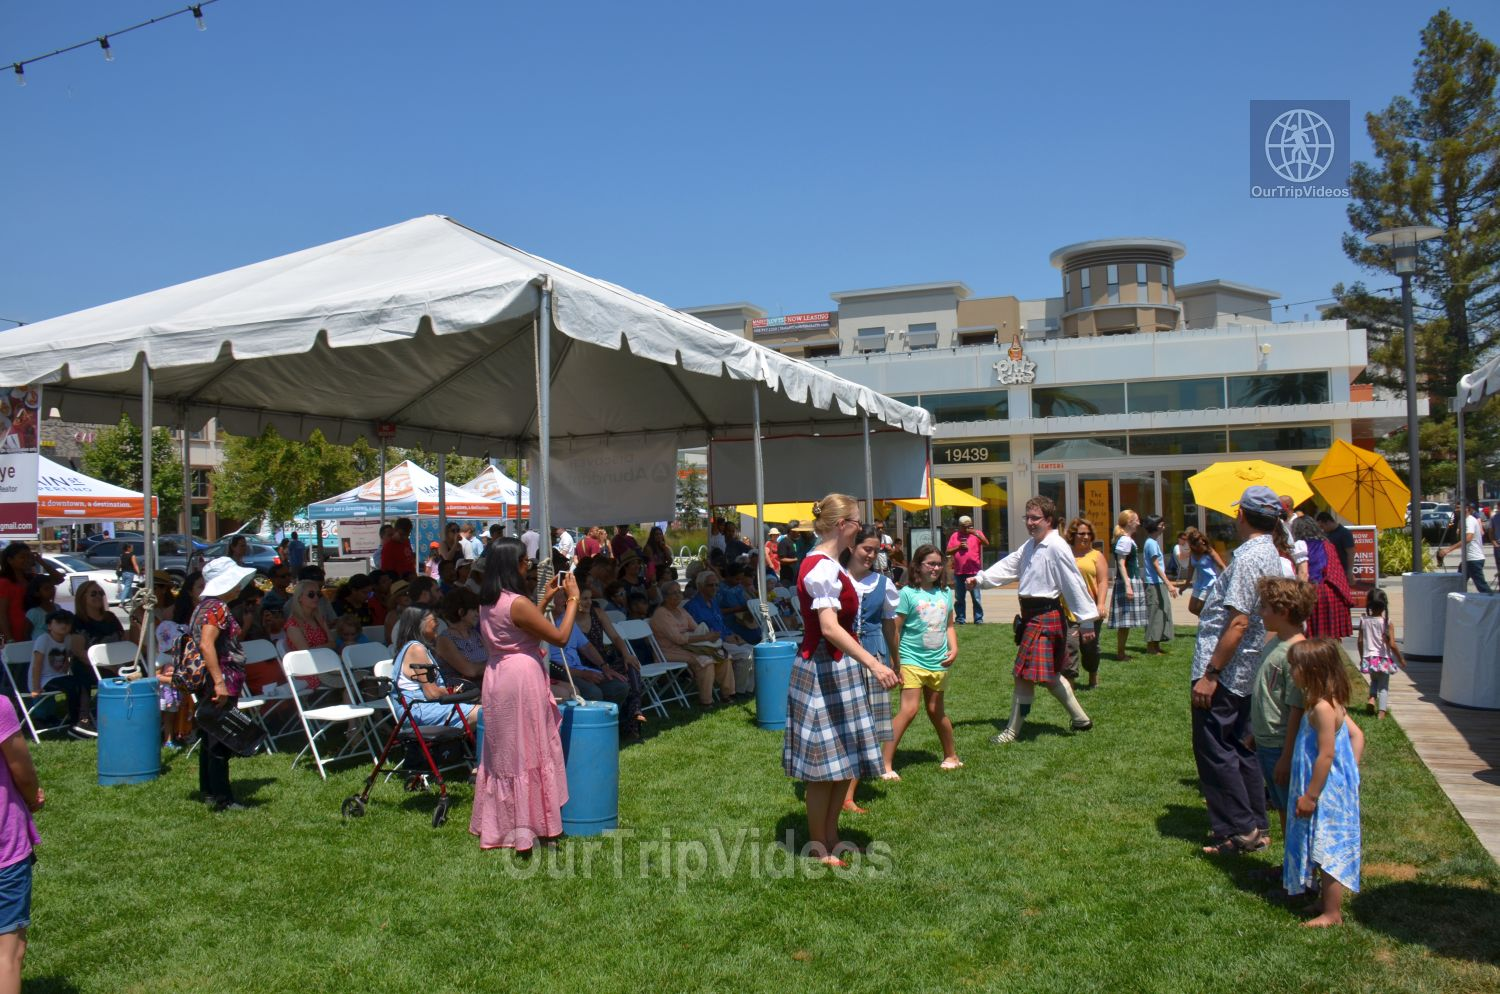 Carnival of Cultures, Cupertino, CA, USA - Picture 22 of 25